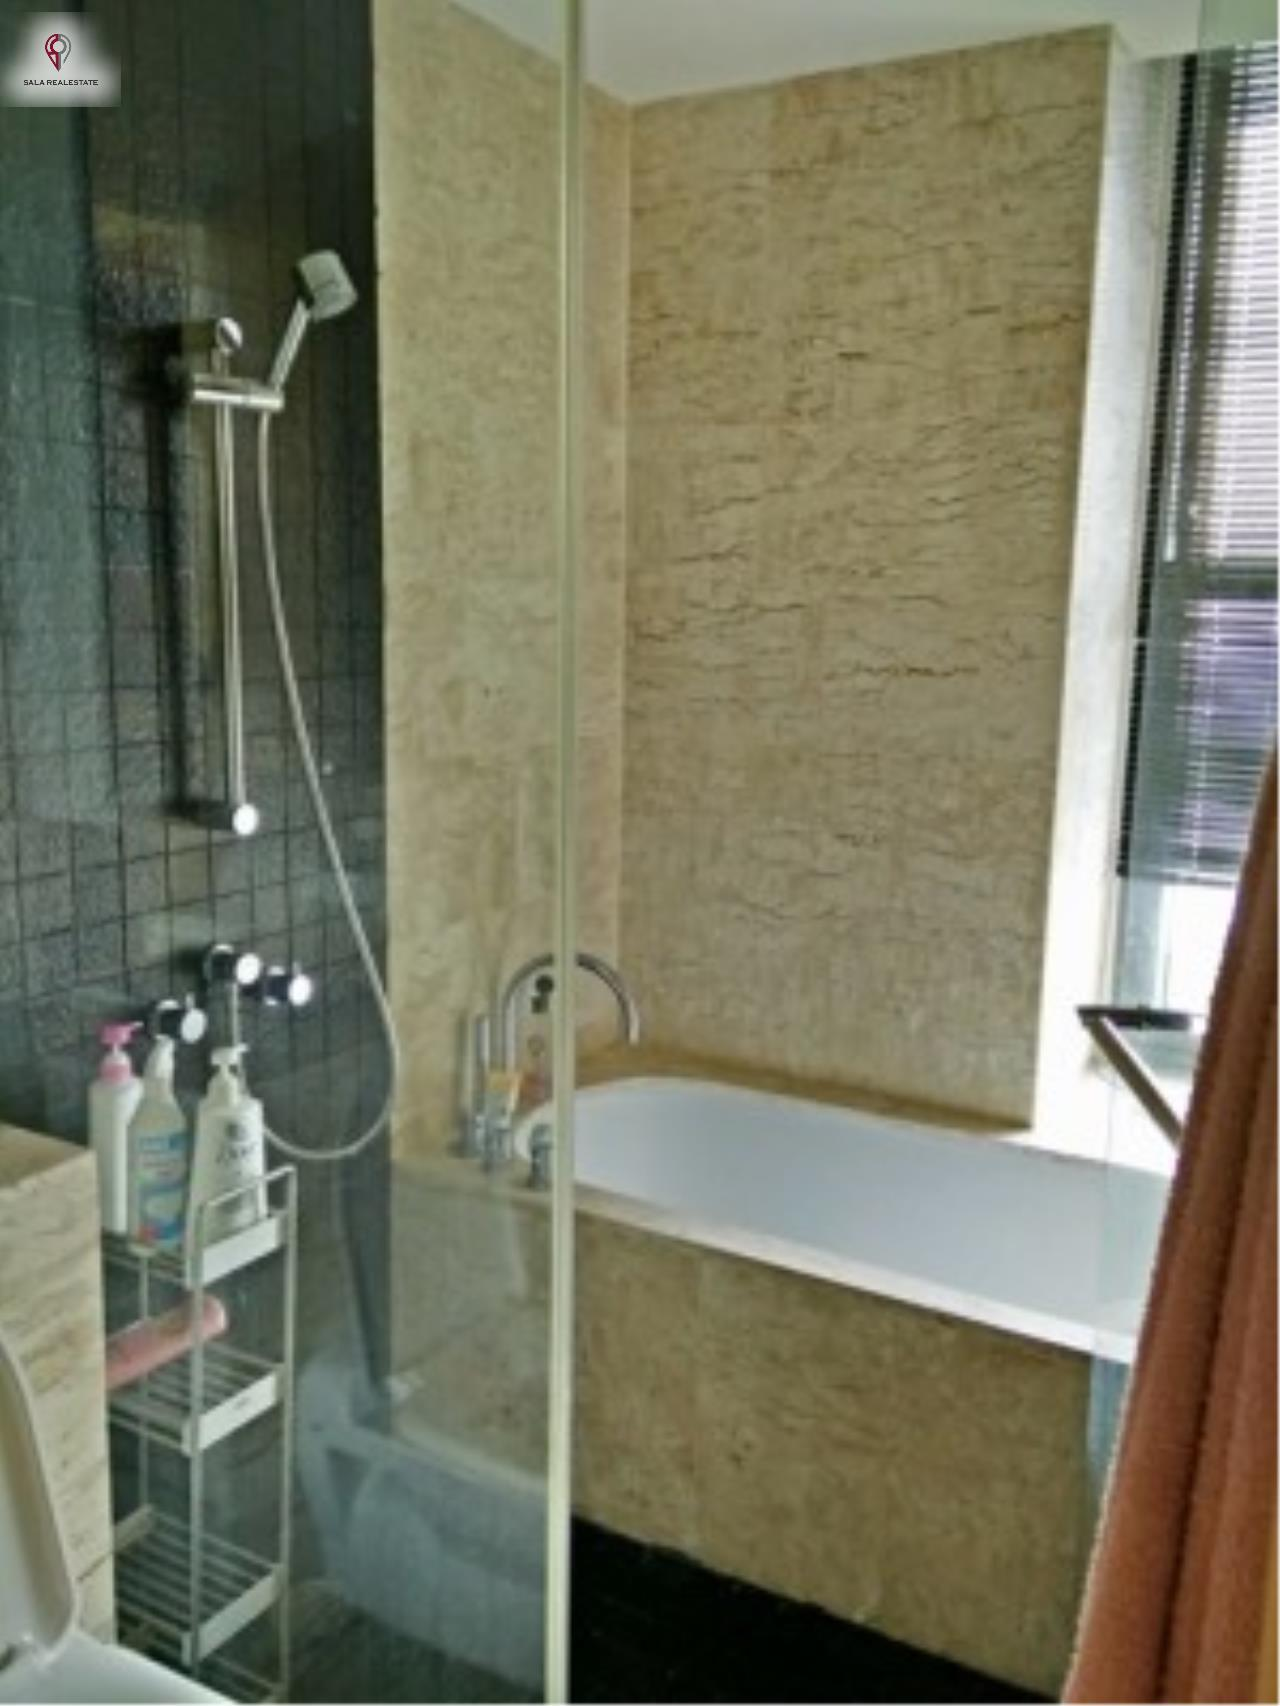 SALA ESTATE Agency's ( FOR SALE ) THE PANO - 2 BEDROOMS 2 BATHROOMS, FULLY FURNISHED 6